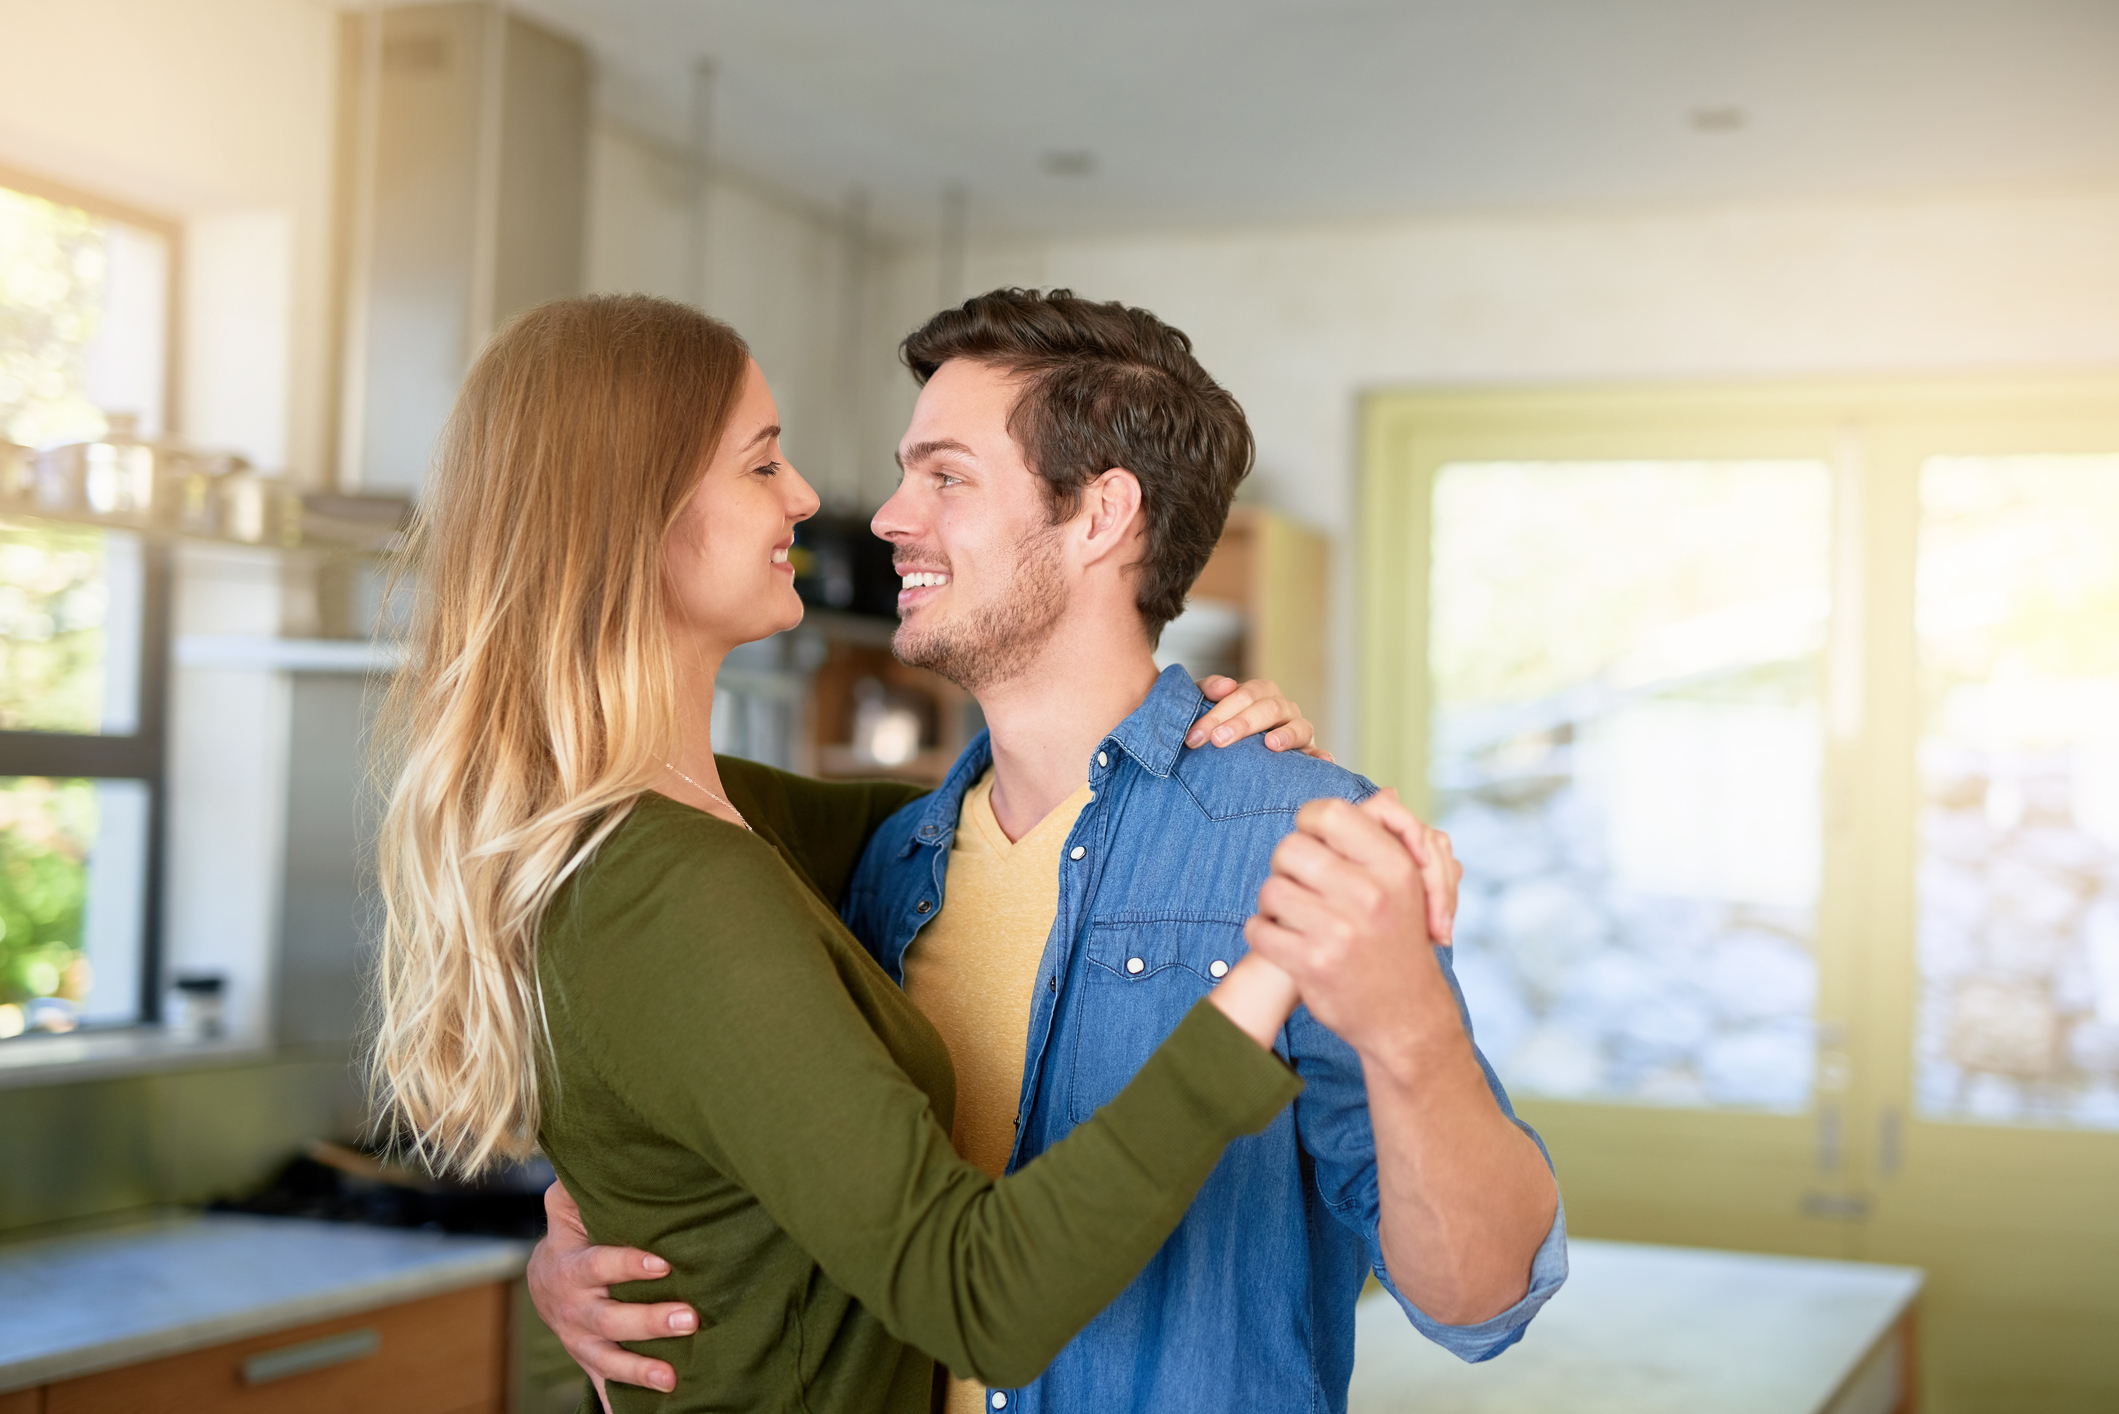 Shot of an affectionate young couple dancing hand in hand together in their kitchen